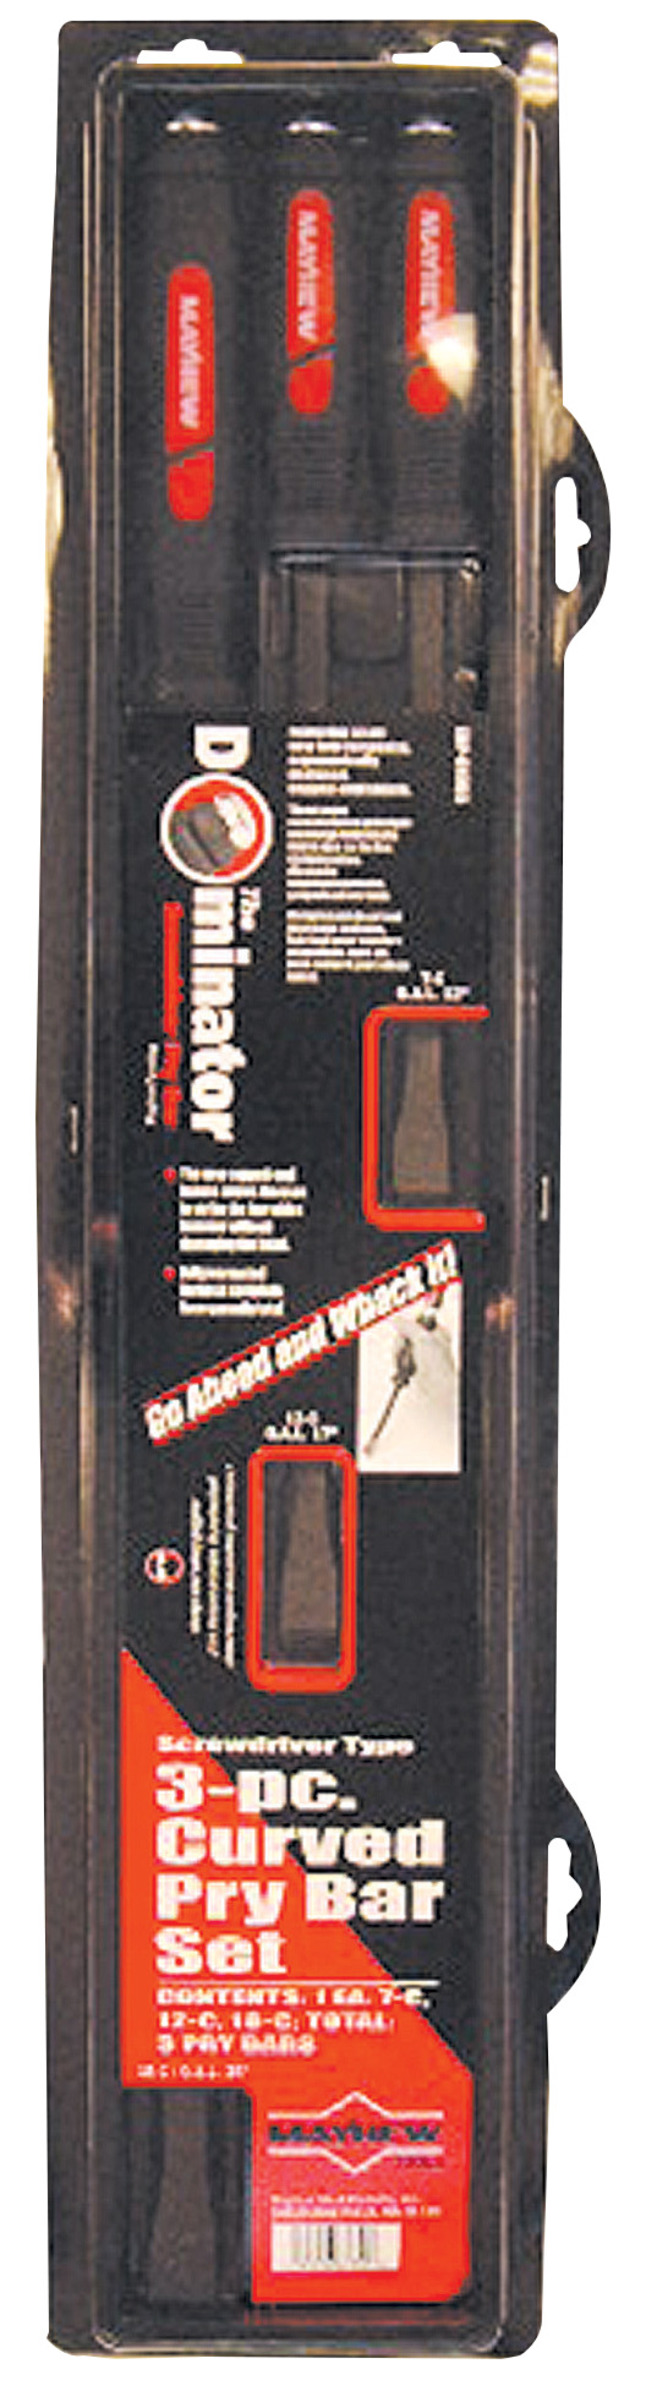 Best Hand Tools, Hand Tool Sets, Hand Tools, Item Number 1050734